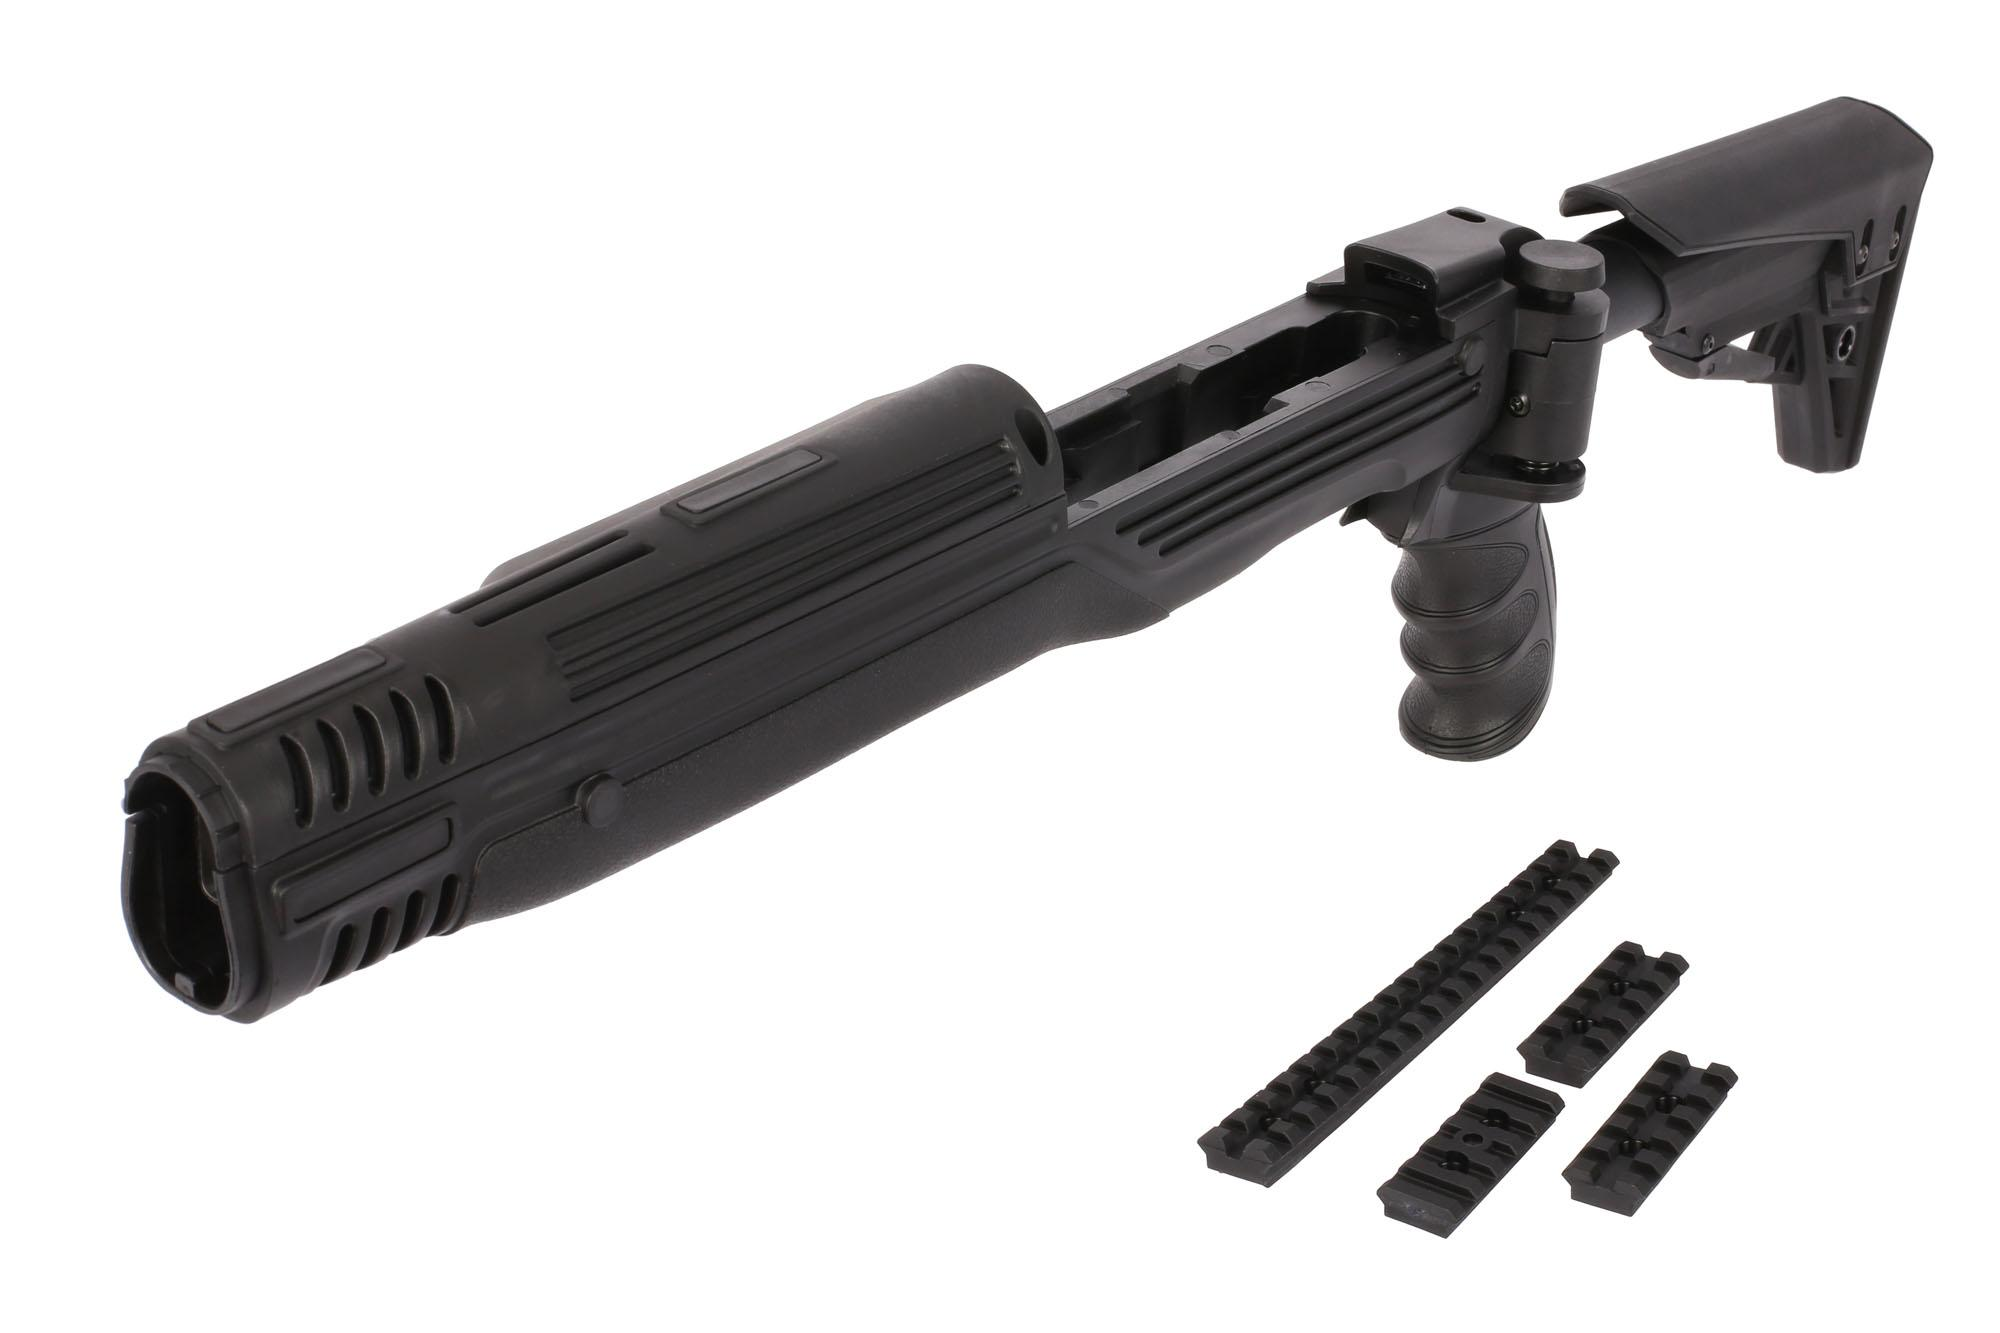 Advanced Technology MINI-14/Thirty Stock - Black